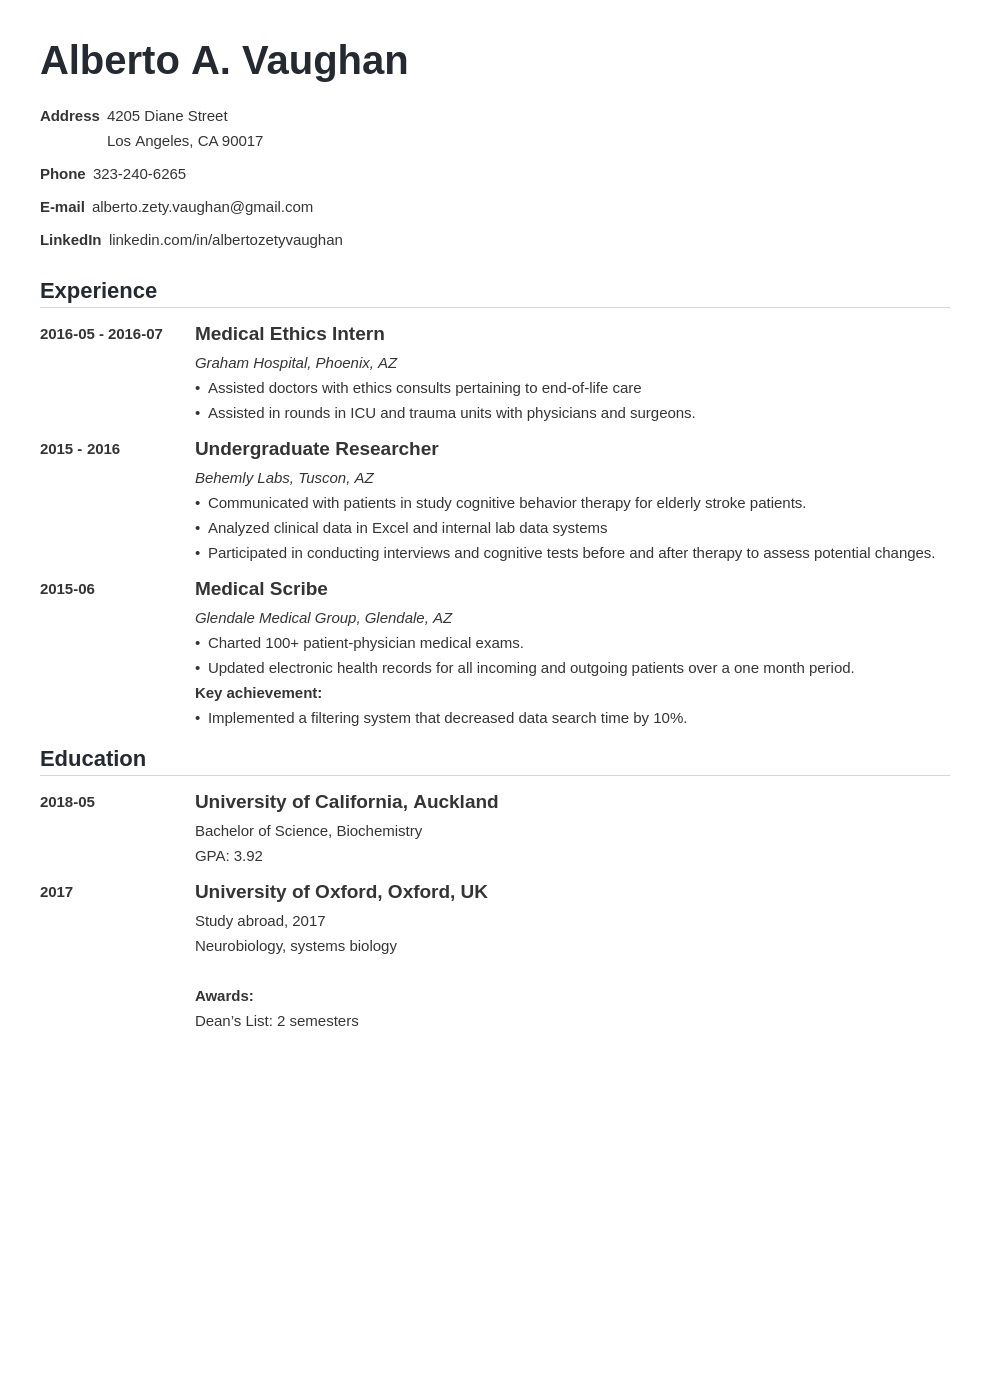 008 Frightening Curriculum Vitae Template Student High Def  Sample College Undergraduate Example For Research PaperFull